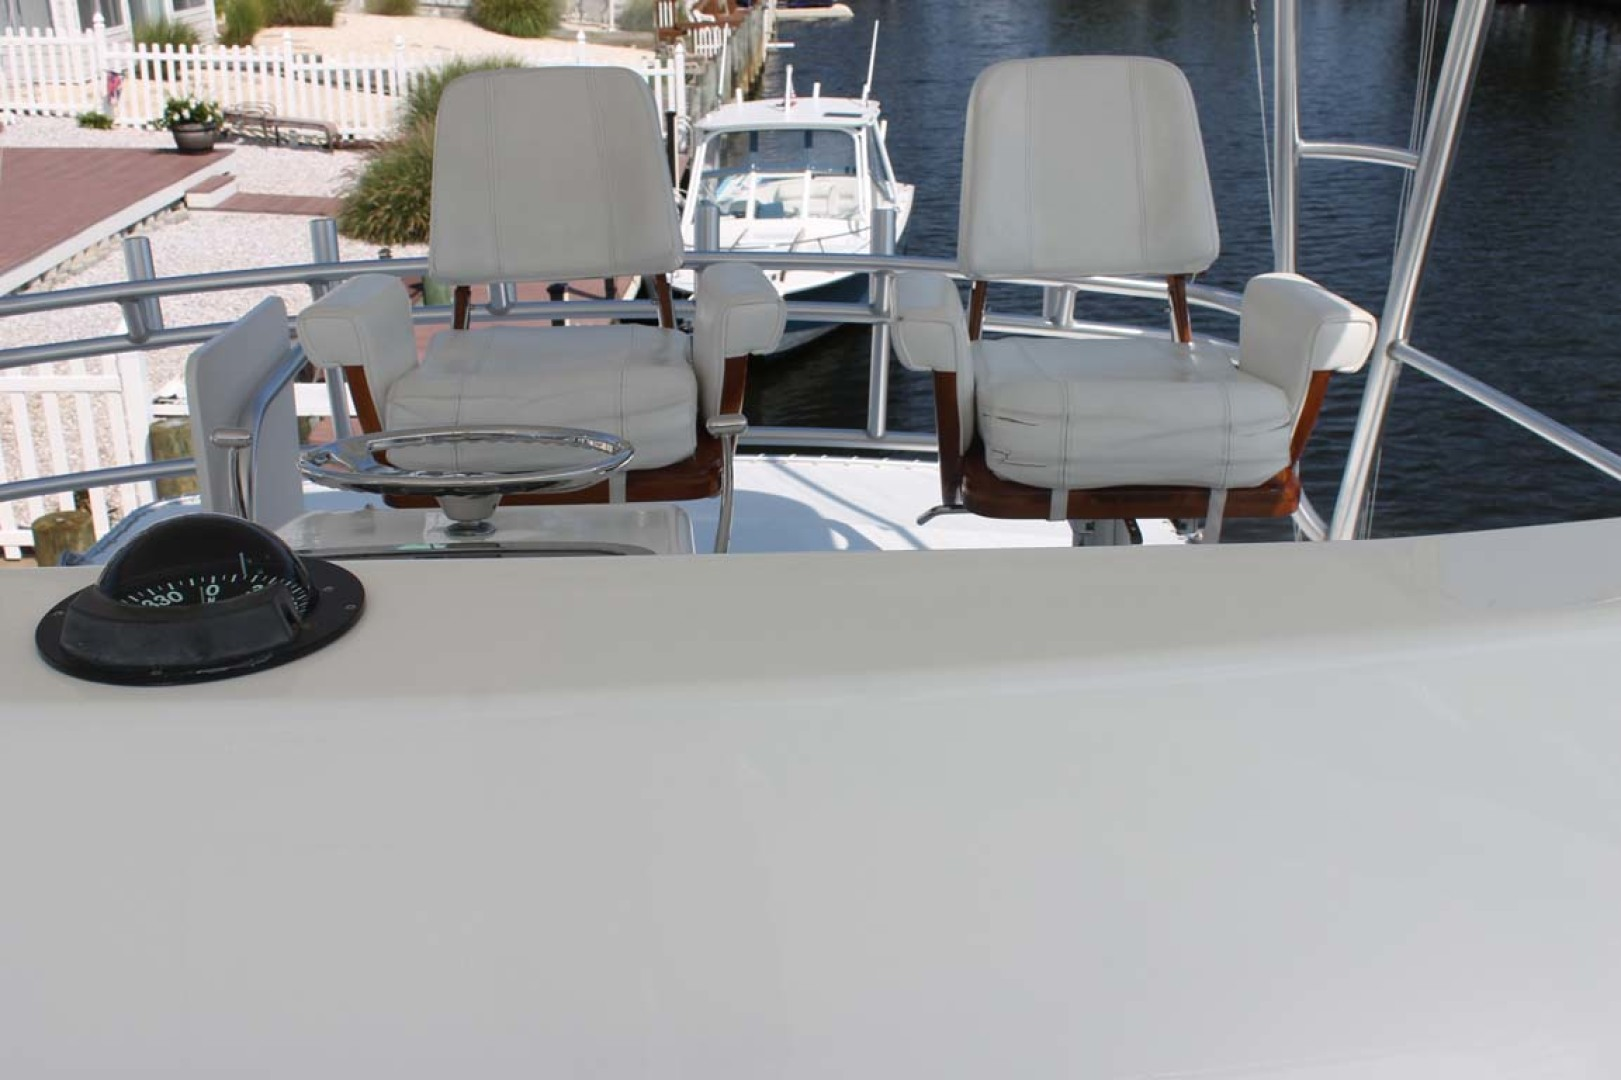 Viking-52 Convertible 2002-Wound Up Cape May-New Jersey-United States-Helm Chairs With Cushions-1230040 | Thumbnail